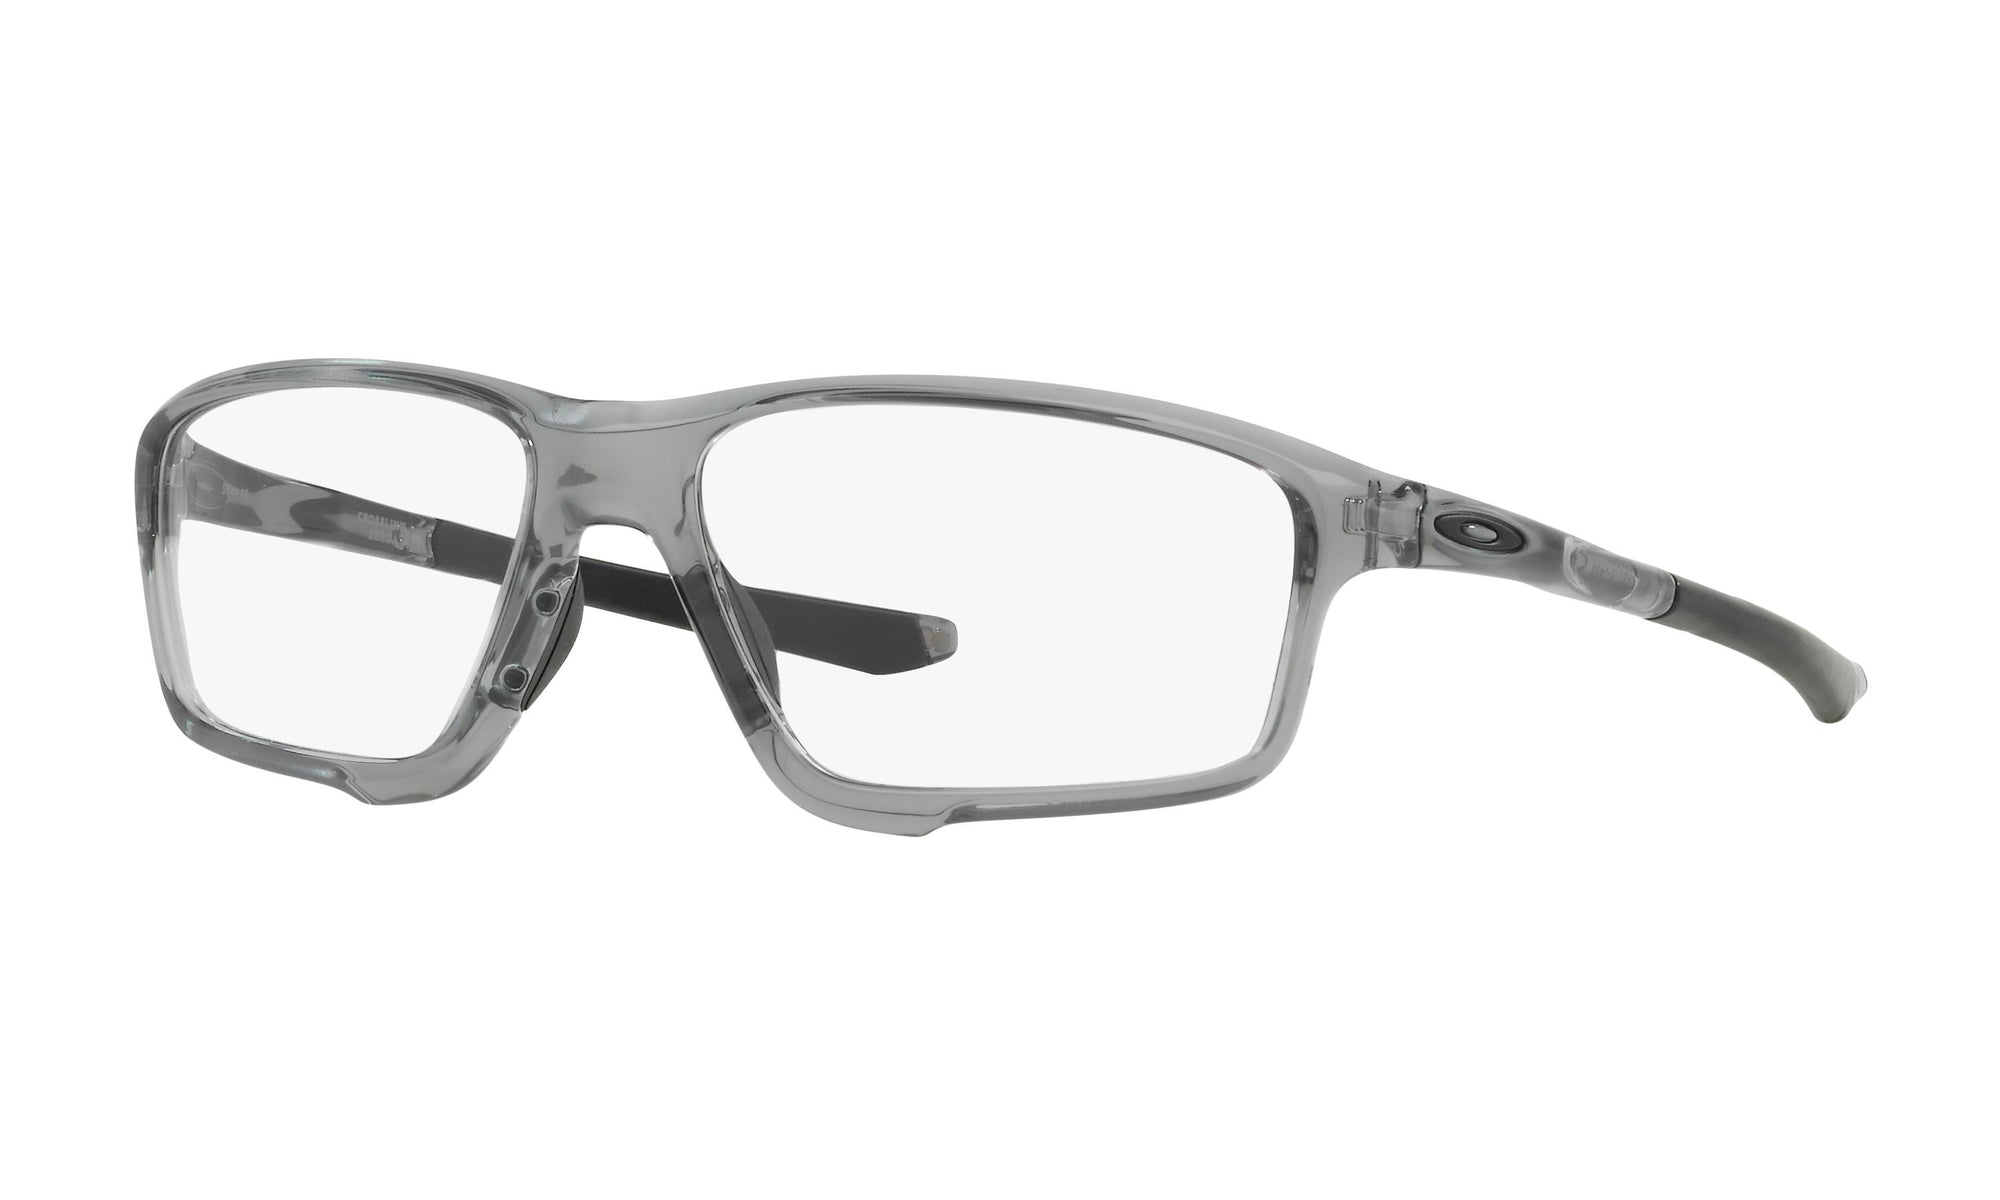 f2ab6ecd6421c Oakley Crosslink Zero 58 Prescription Glasses – SALT CITY OPTICS